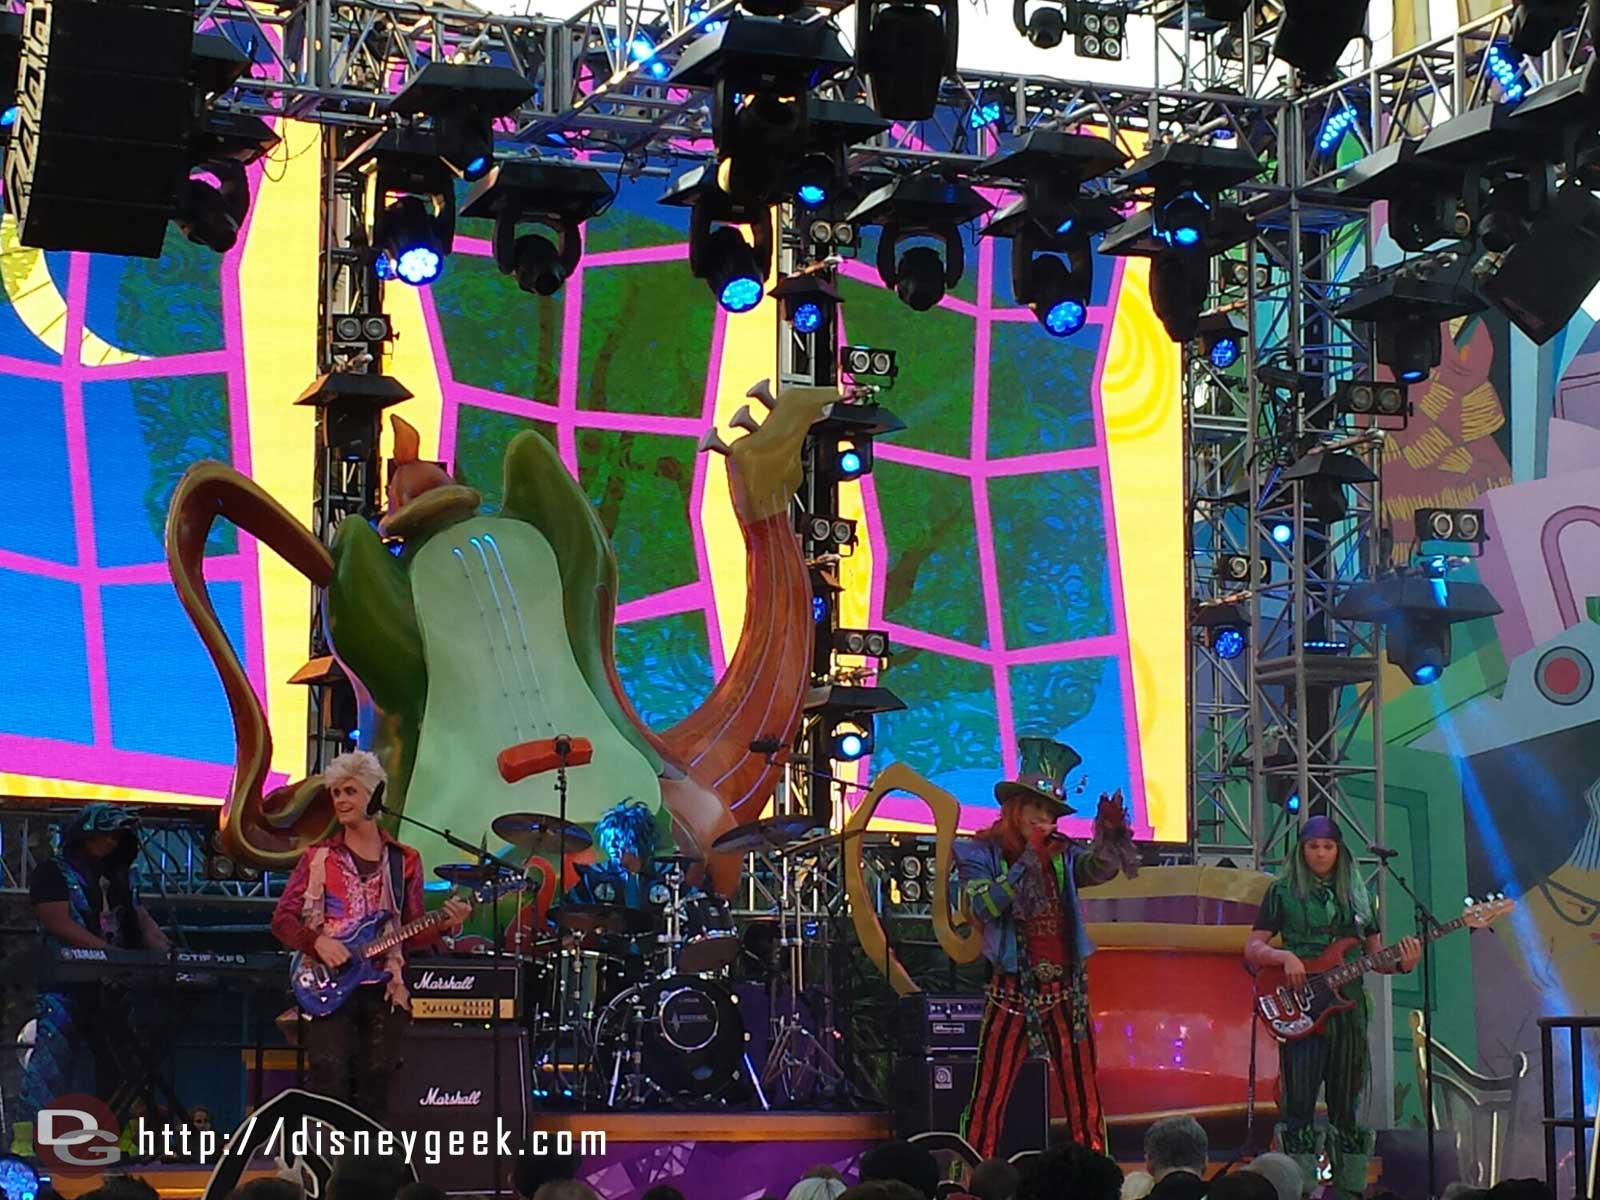 The #MadTParty band performing